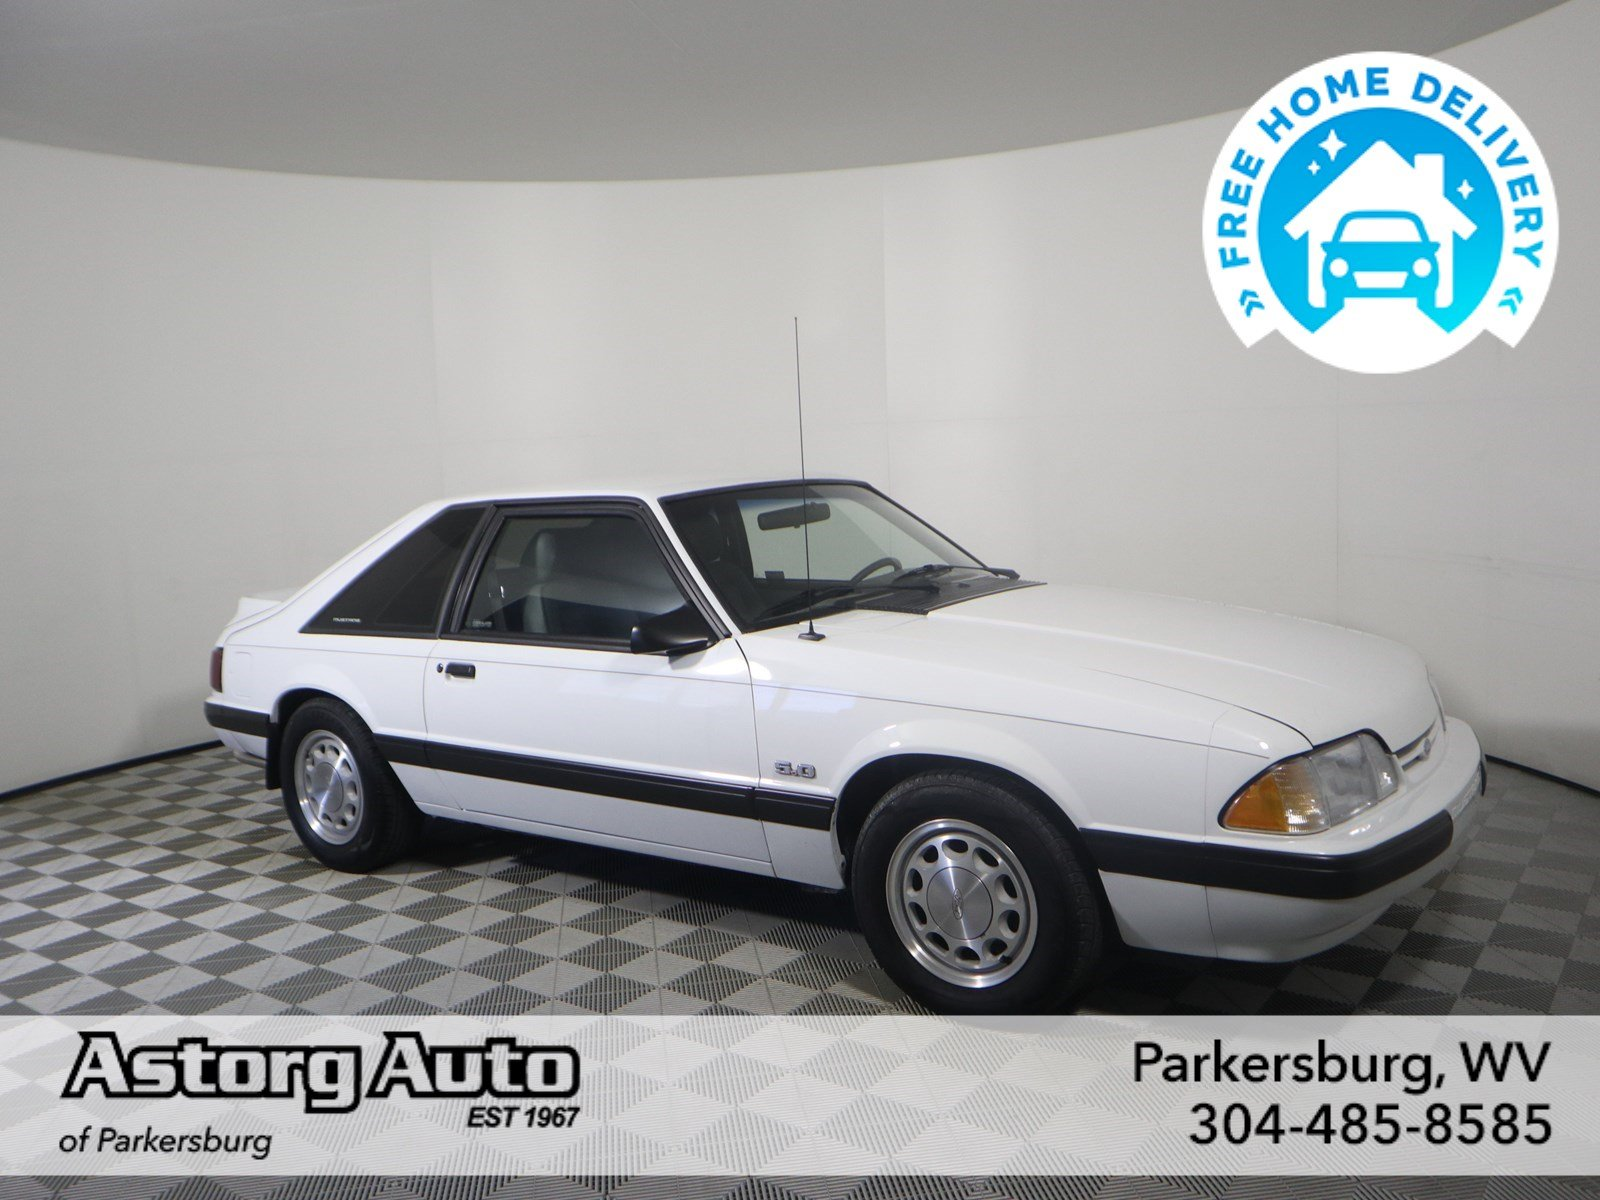 Pre-Owned 1989 Ford Mustang LX Sport